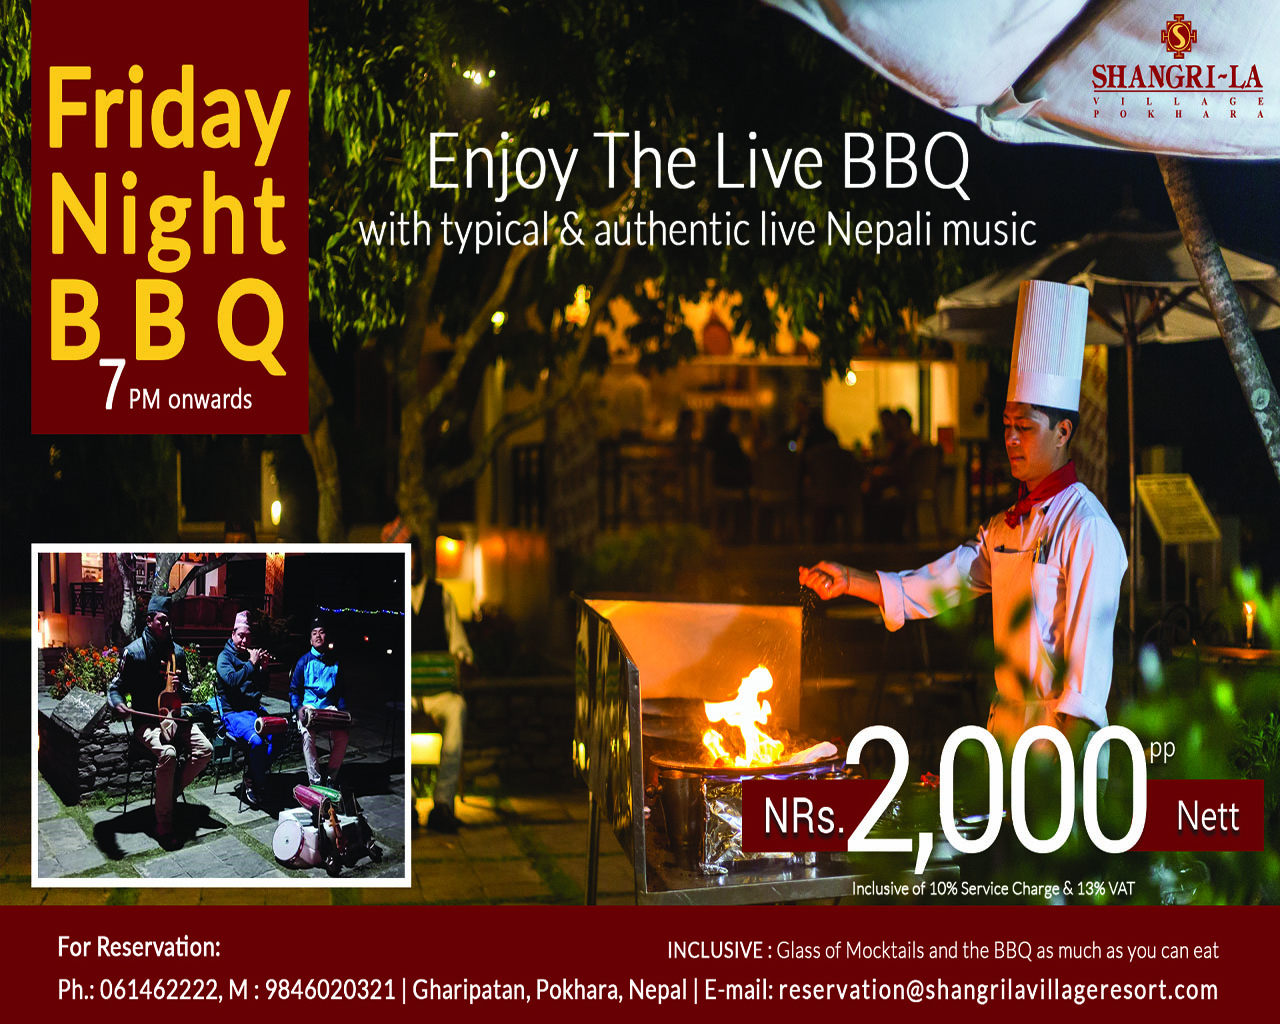 Friday Night BBQ with live music every Friday